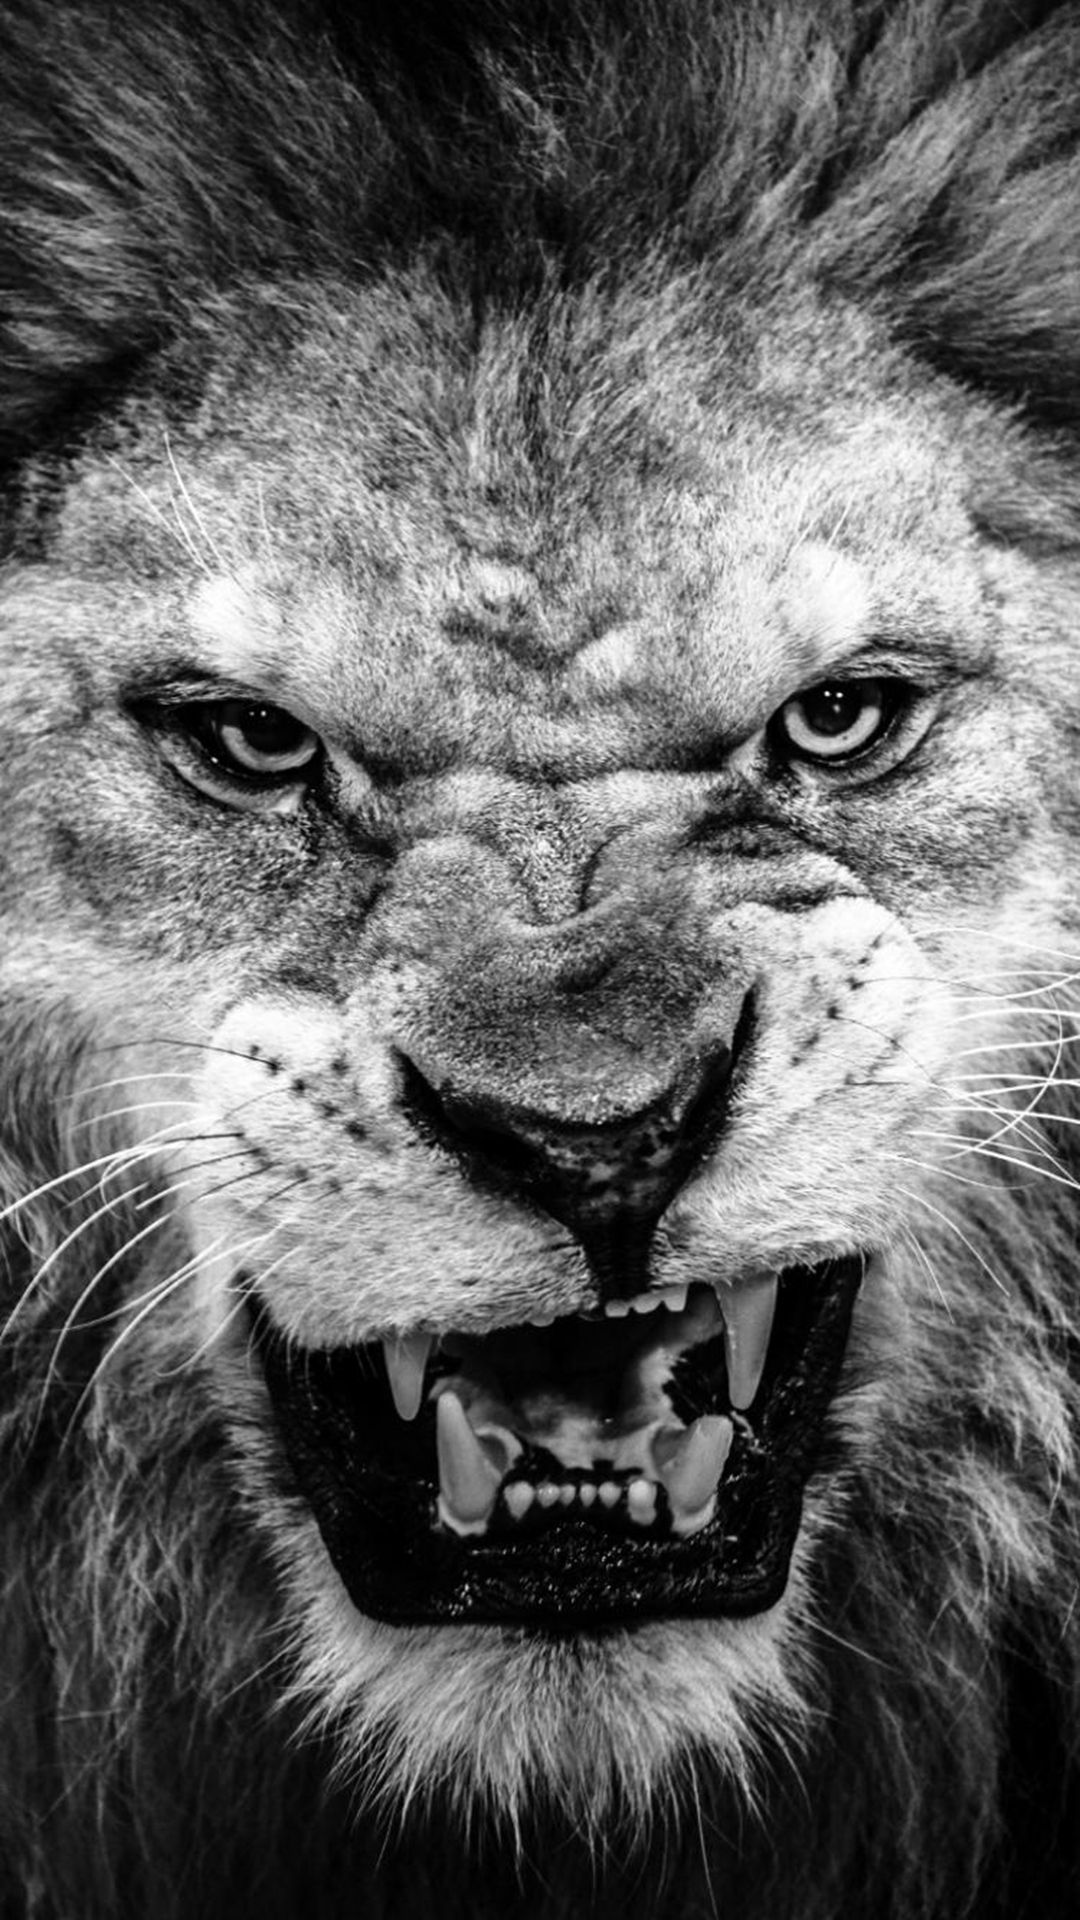 Lion Wallpaper Hd 1080p Iphone Black And White Newwallpapers Org